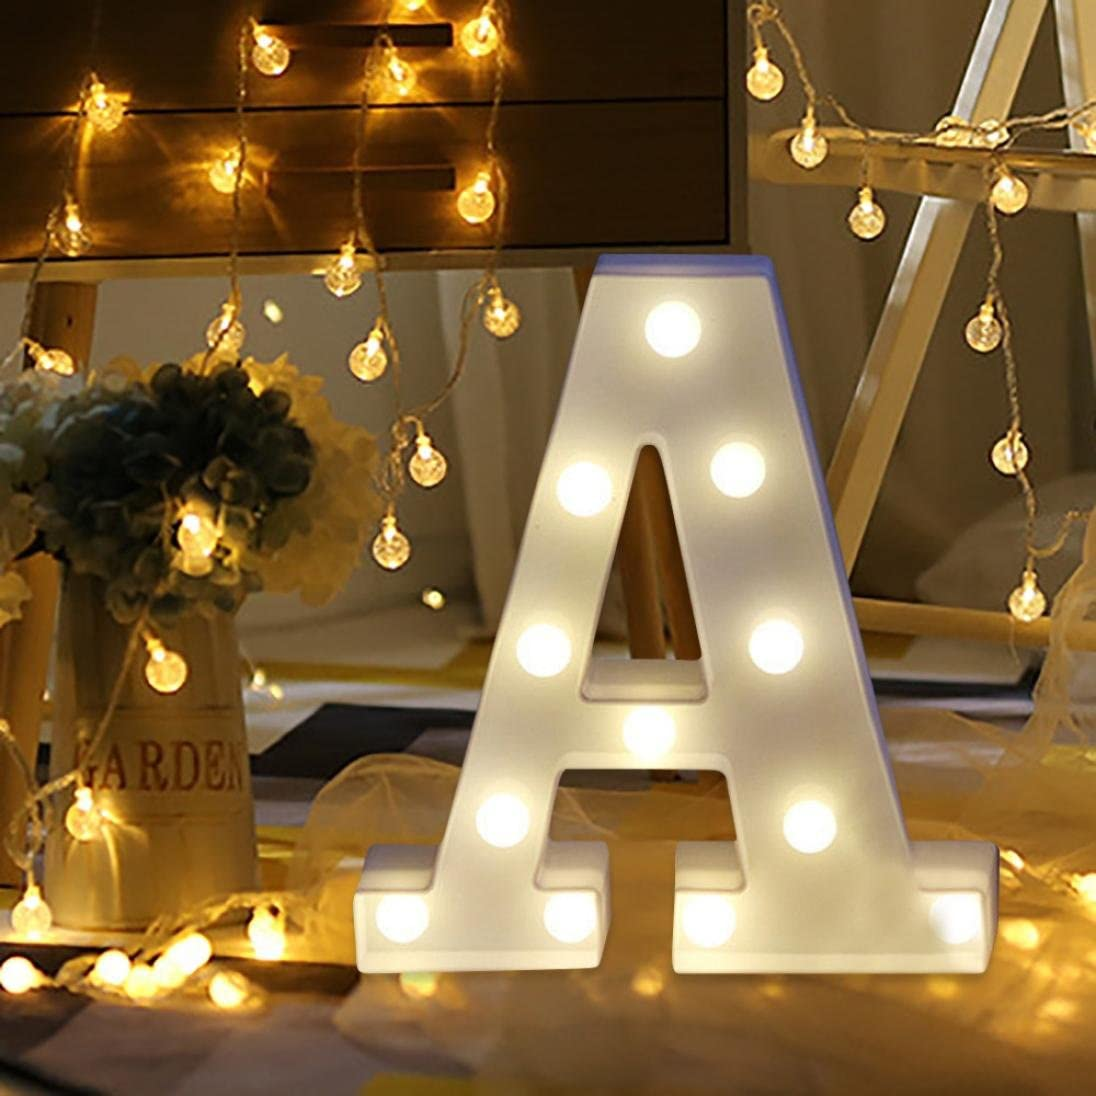 Amazon Com Vacally Led Light Alphabet Letter Lights Led Light Up White Plastic Letters Standing Hanging A Z Wedding Birthday Decorate A Pet Supplies